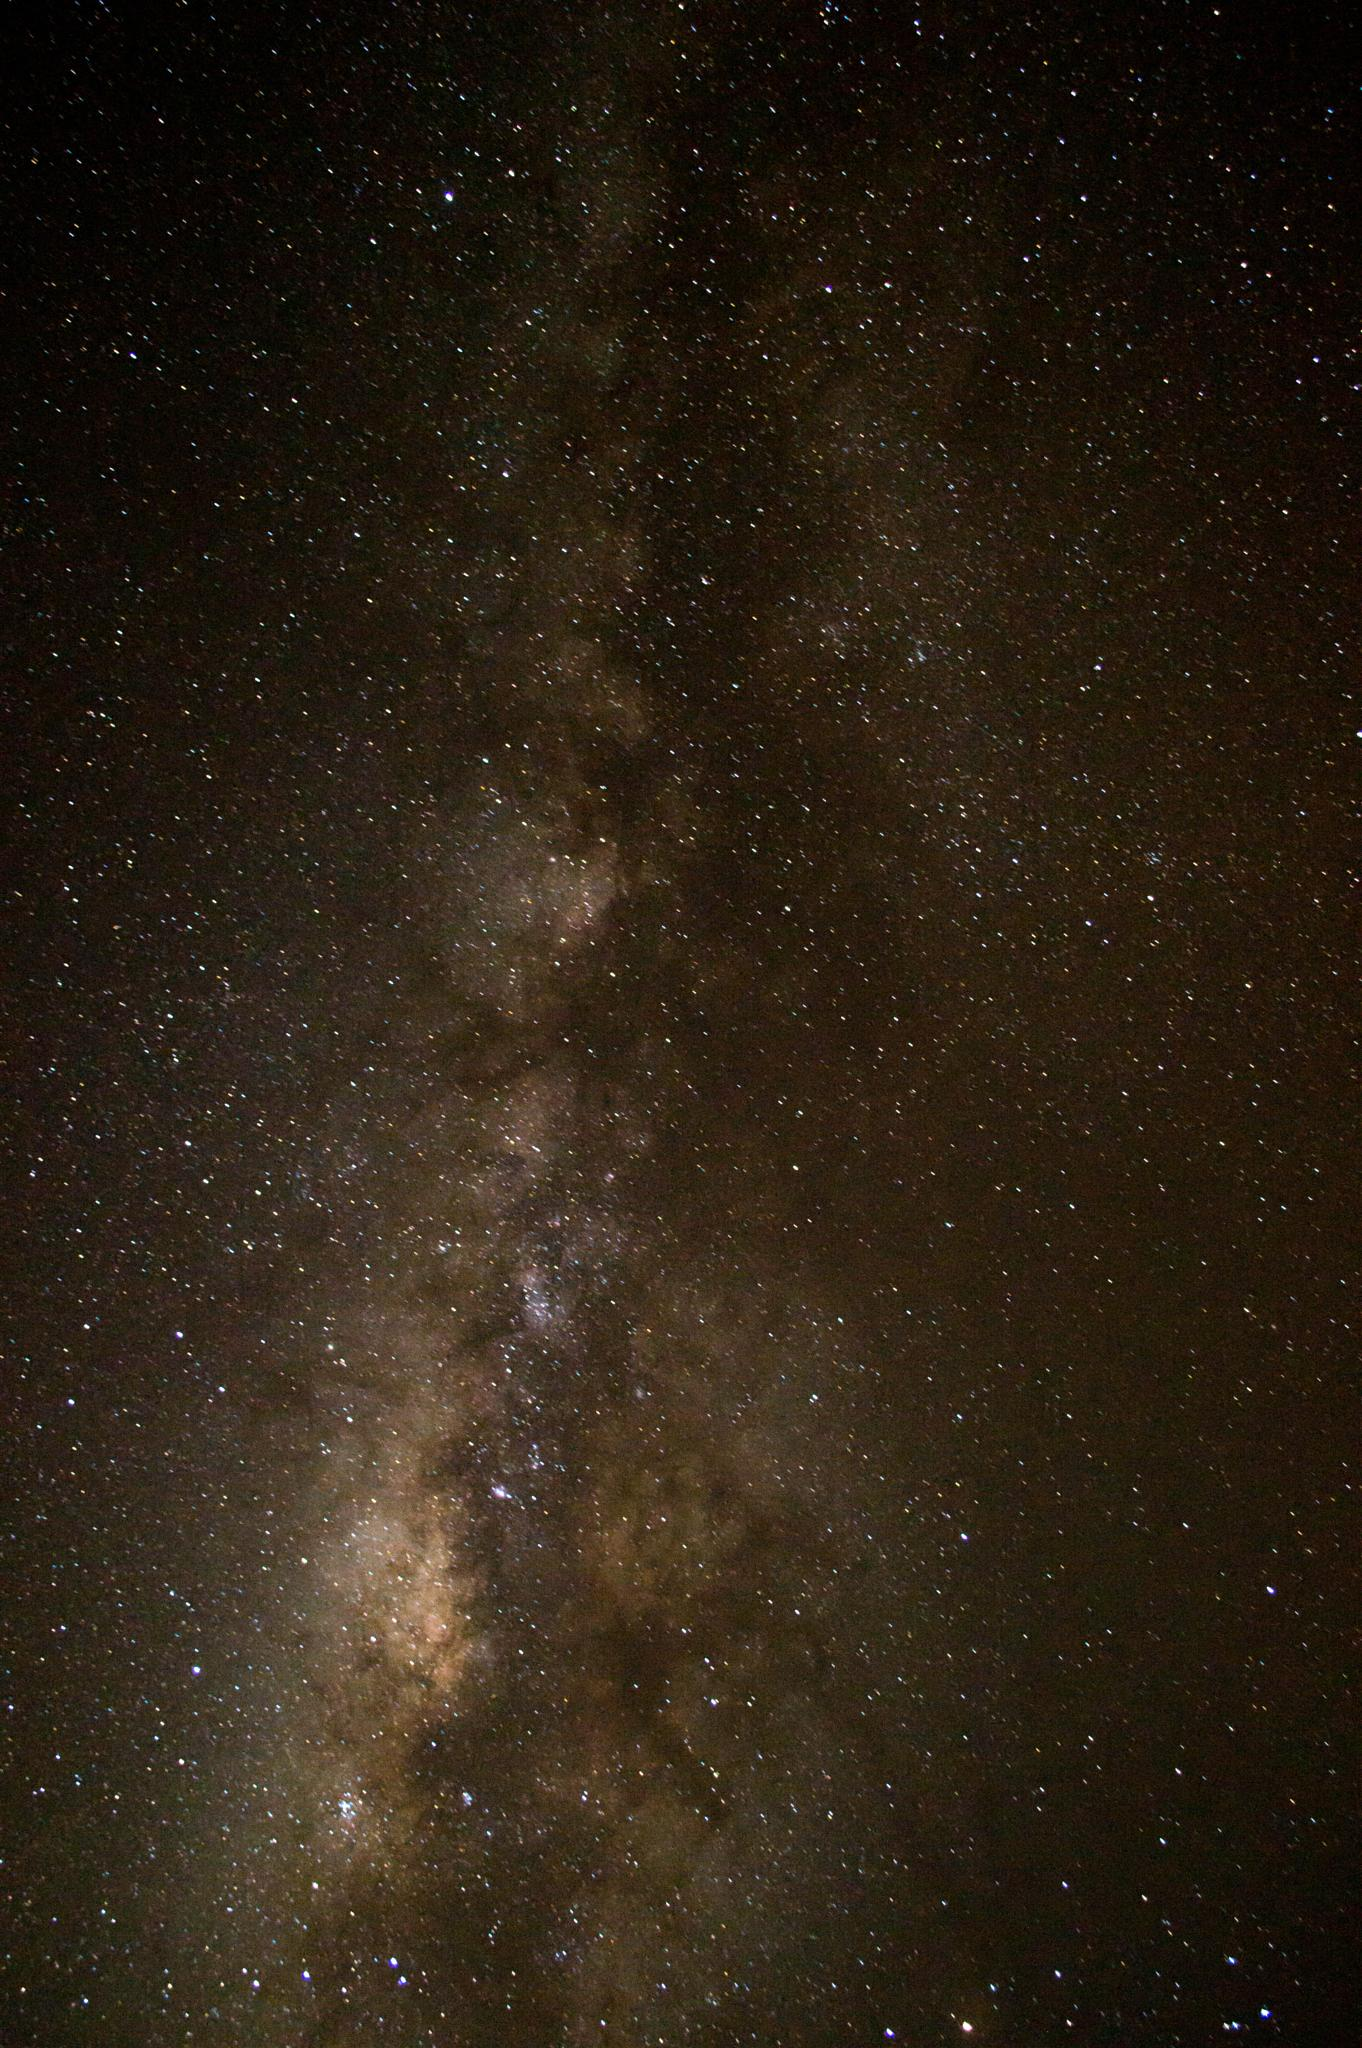 Milky way from Gili Trawangan by BenLeenders